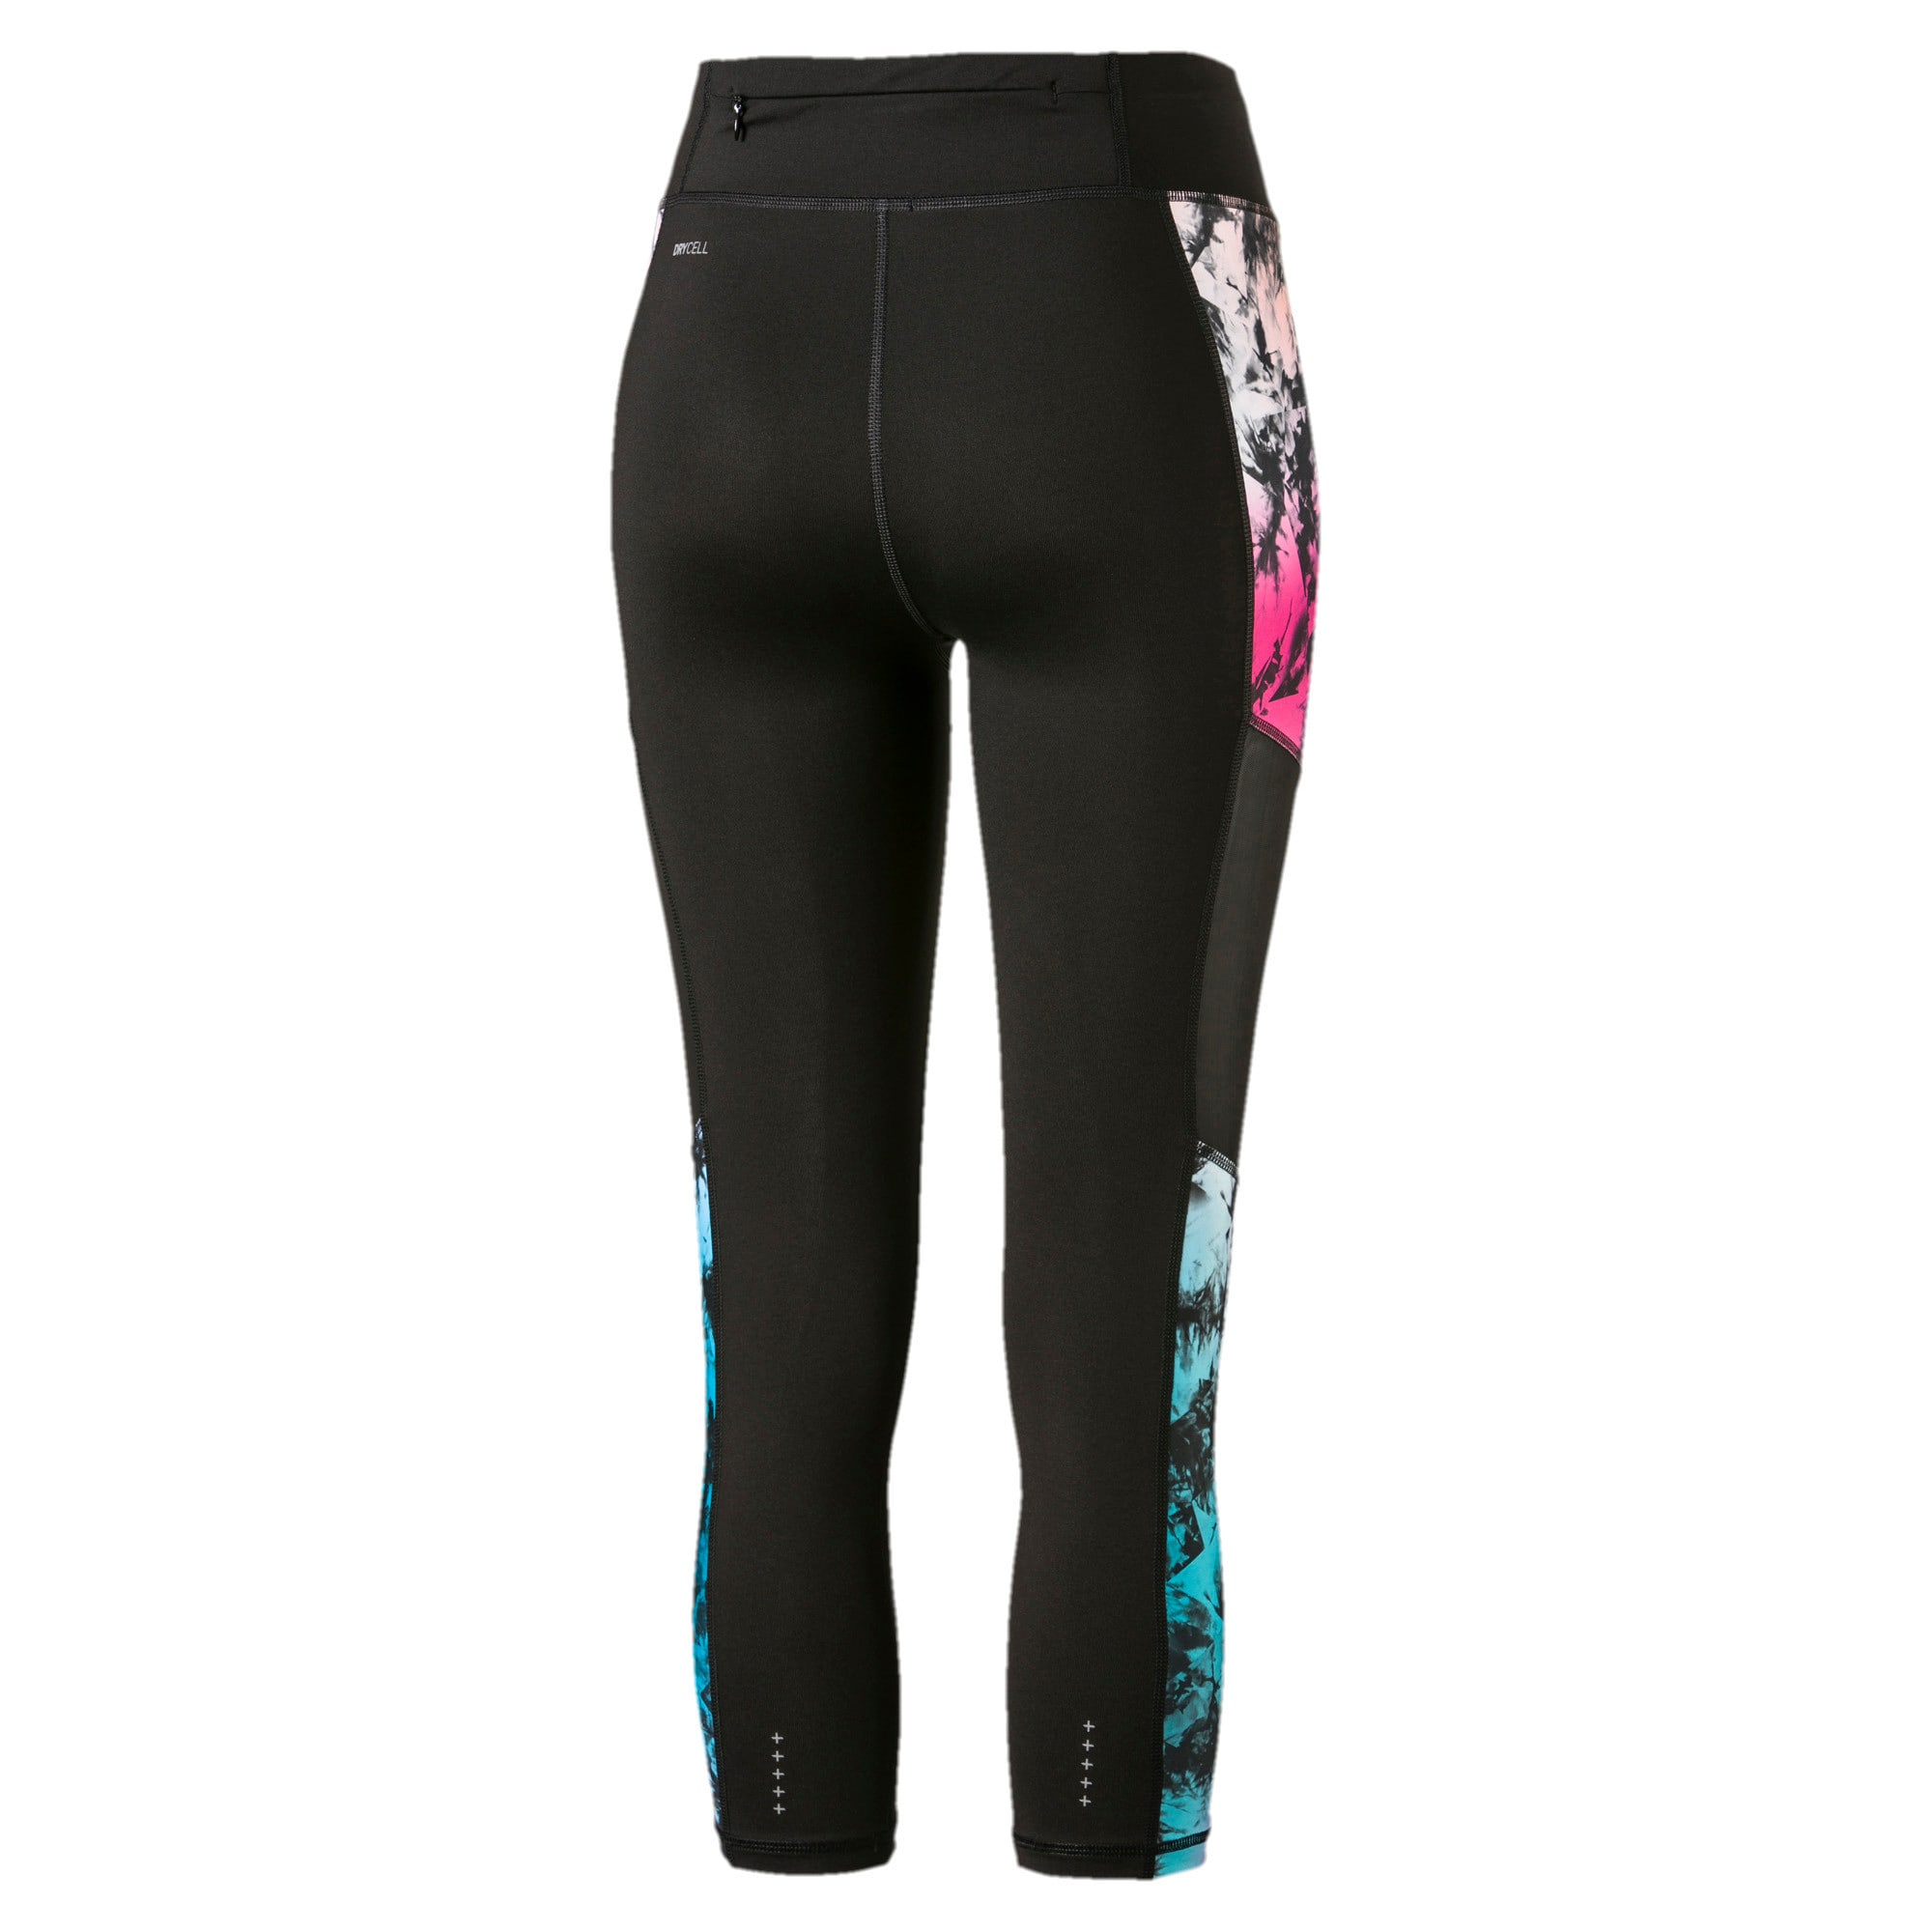 Ignite 3/4 Graphic Women's Tights, Puma Black-Multi-Q2 Print, large